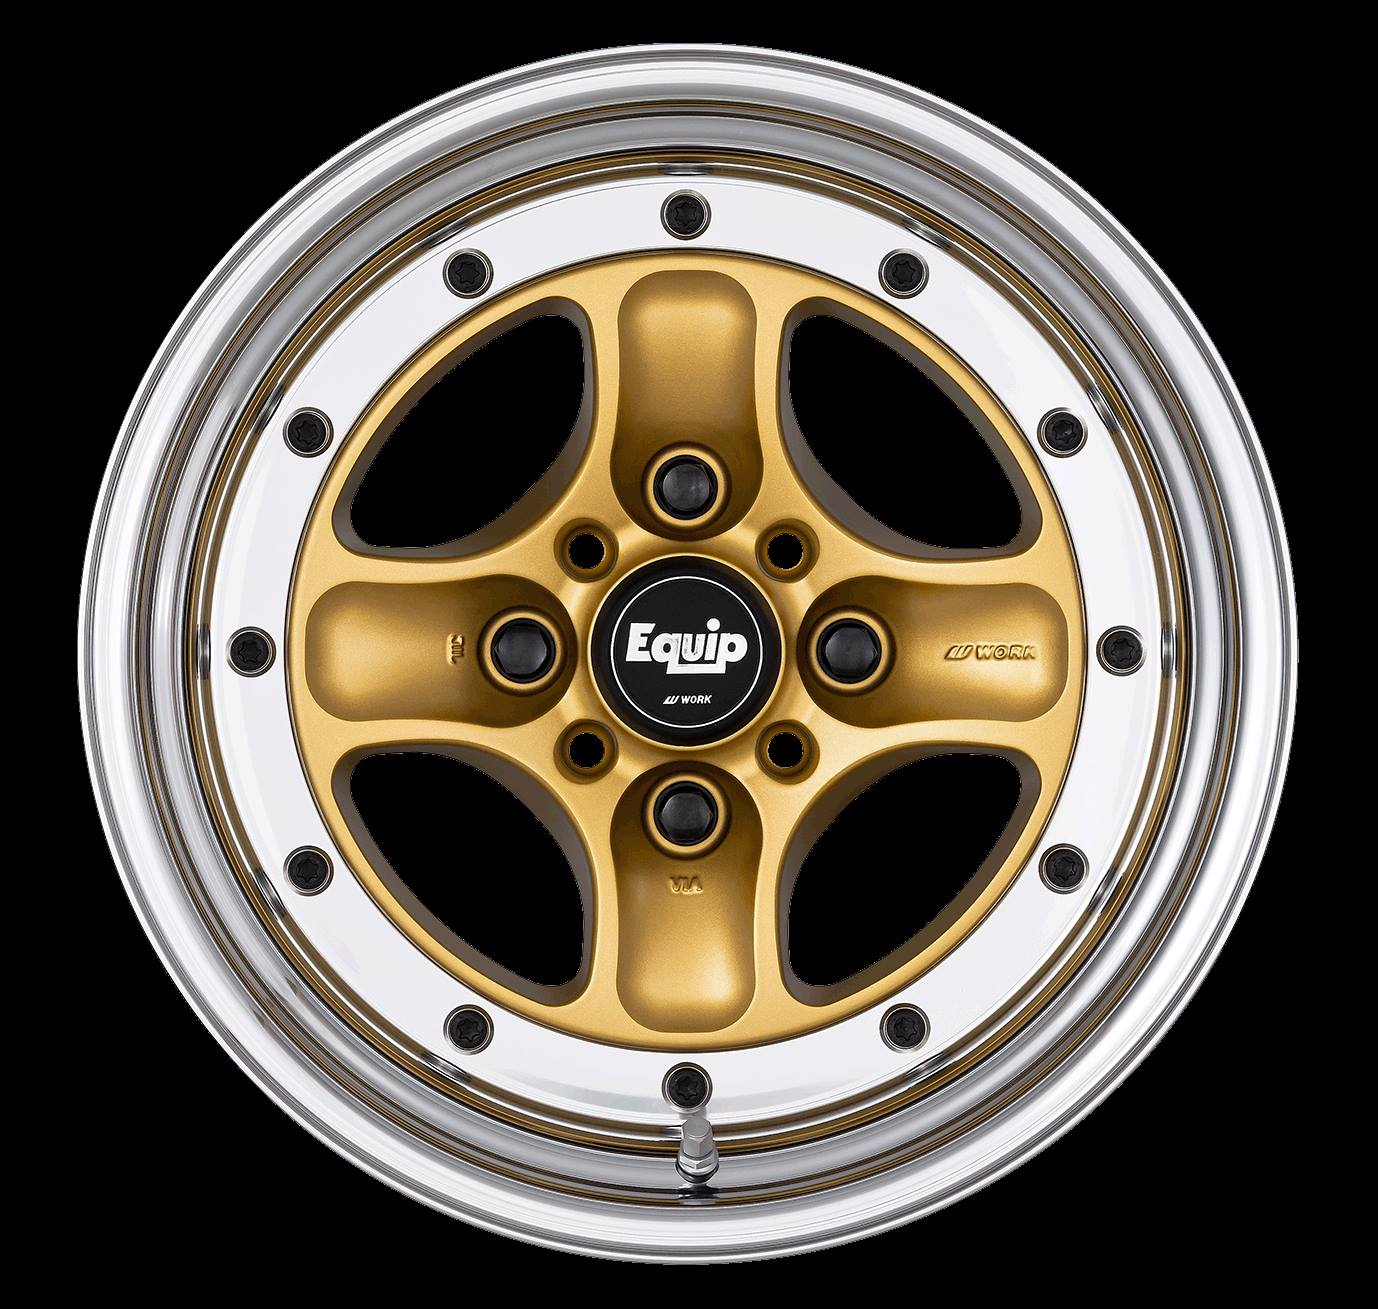 News Work Wheels Releases Equip 40 To Celebrate 40th